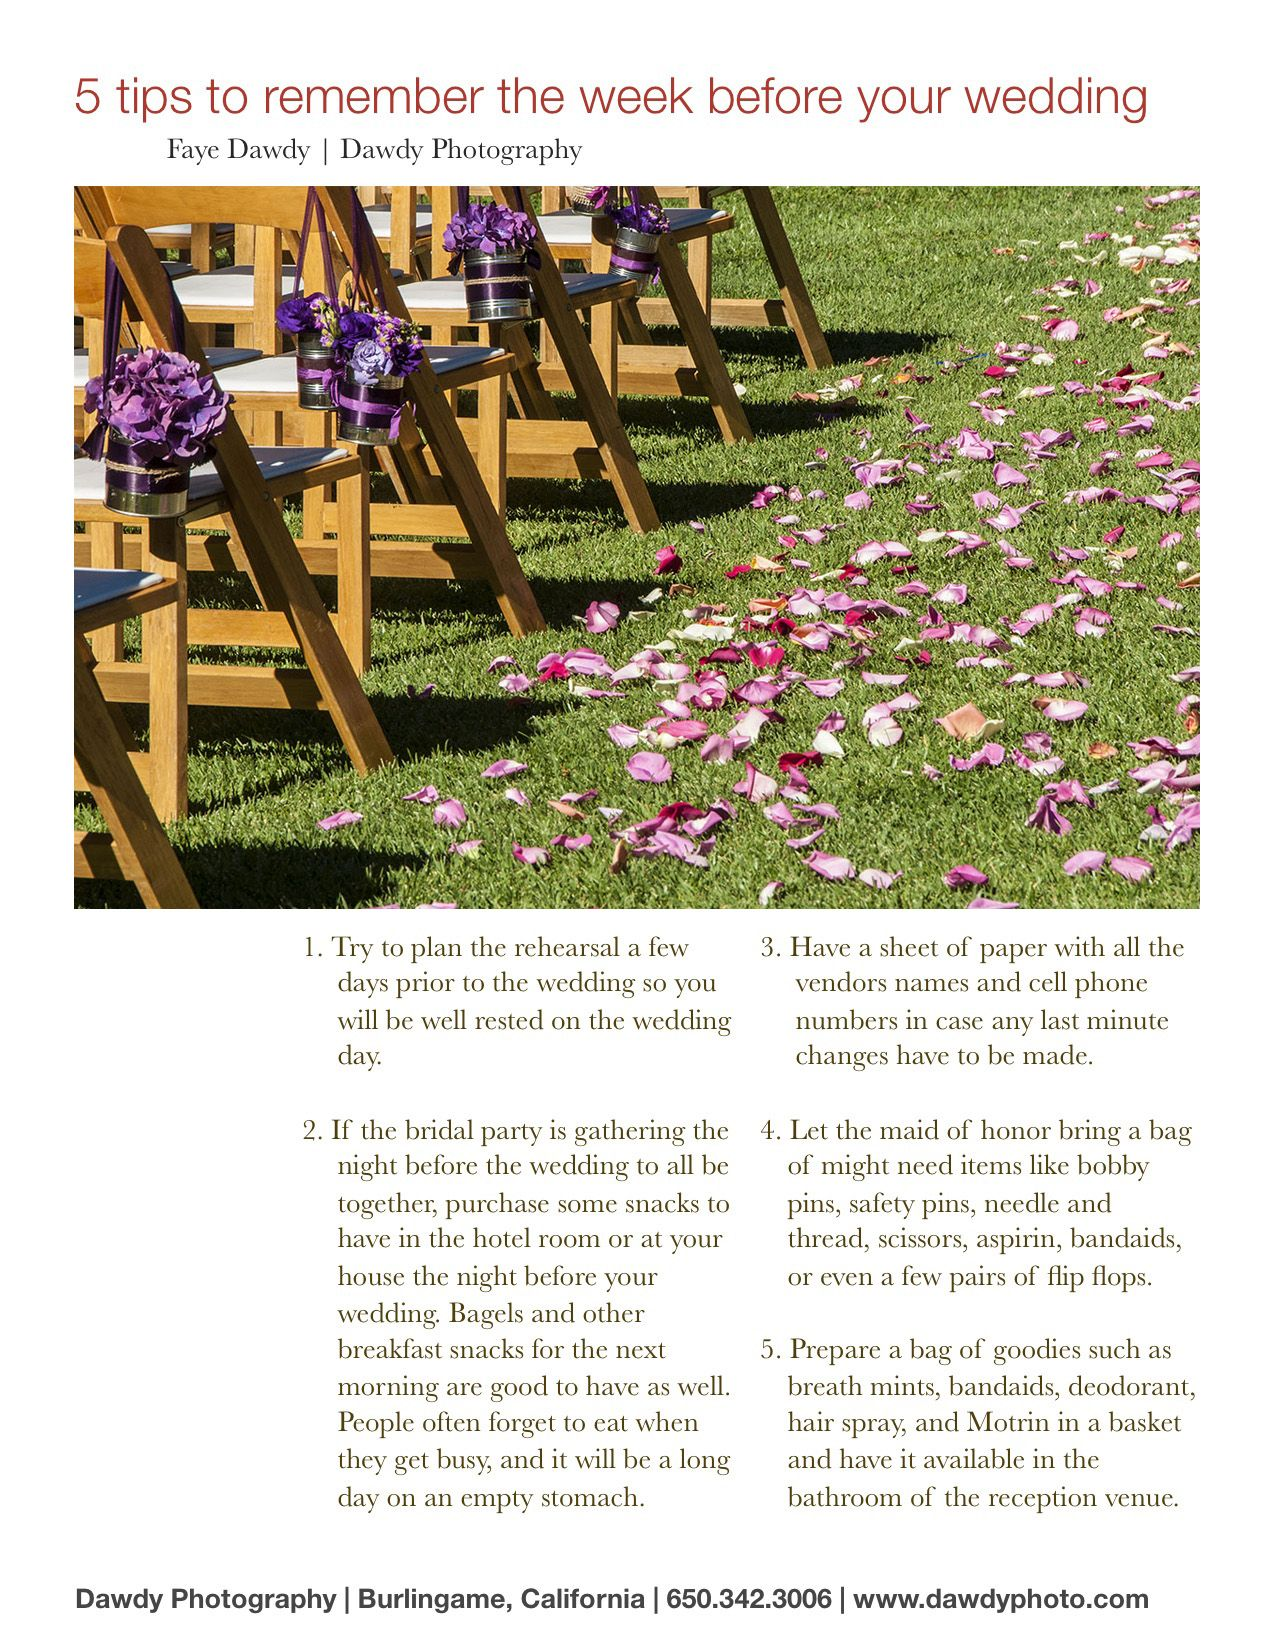 So Many Little Things To Help Make The Day Run Smoothly Wedding Planning Made Easy